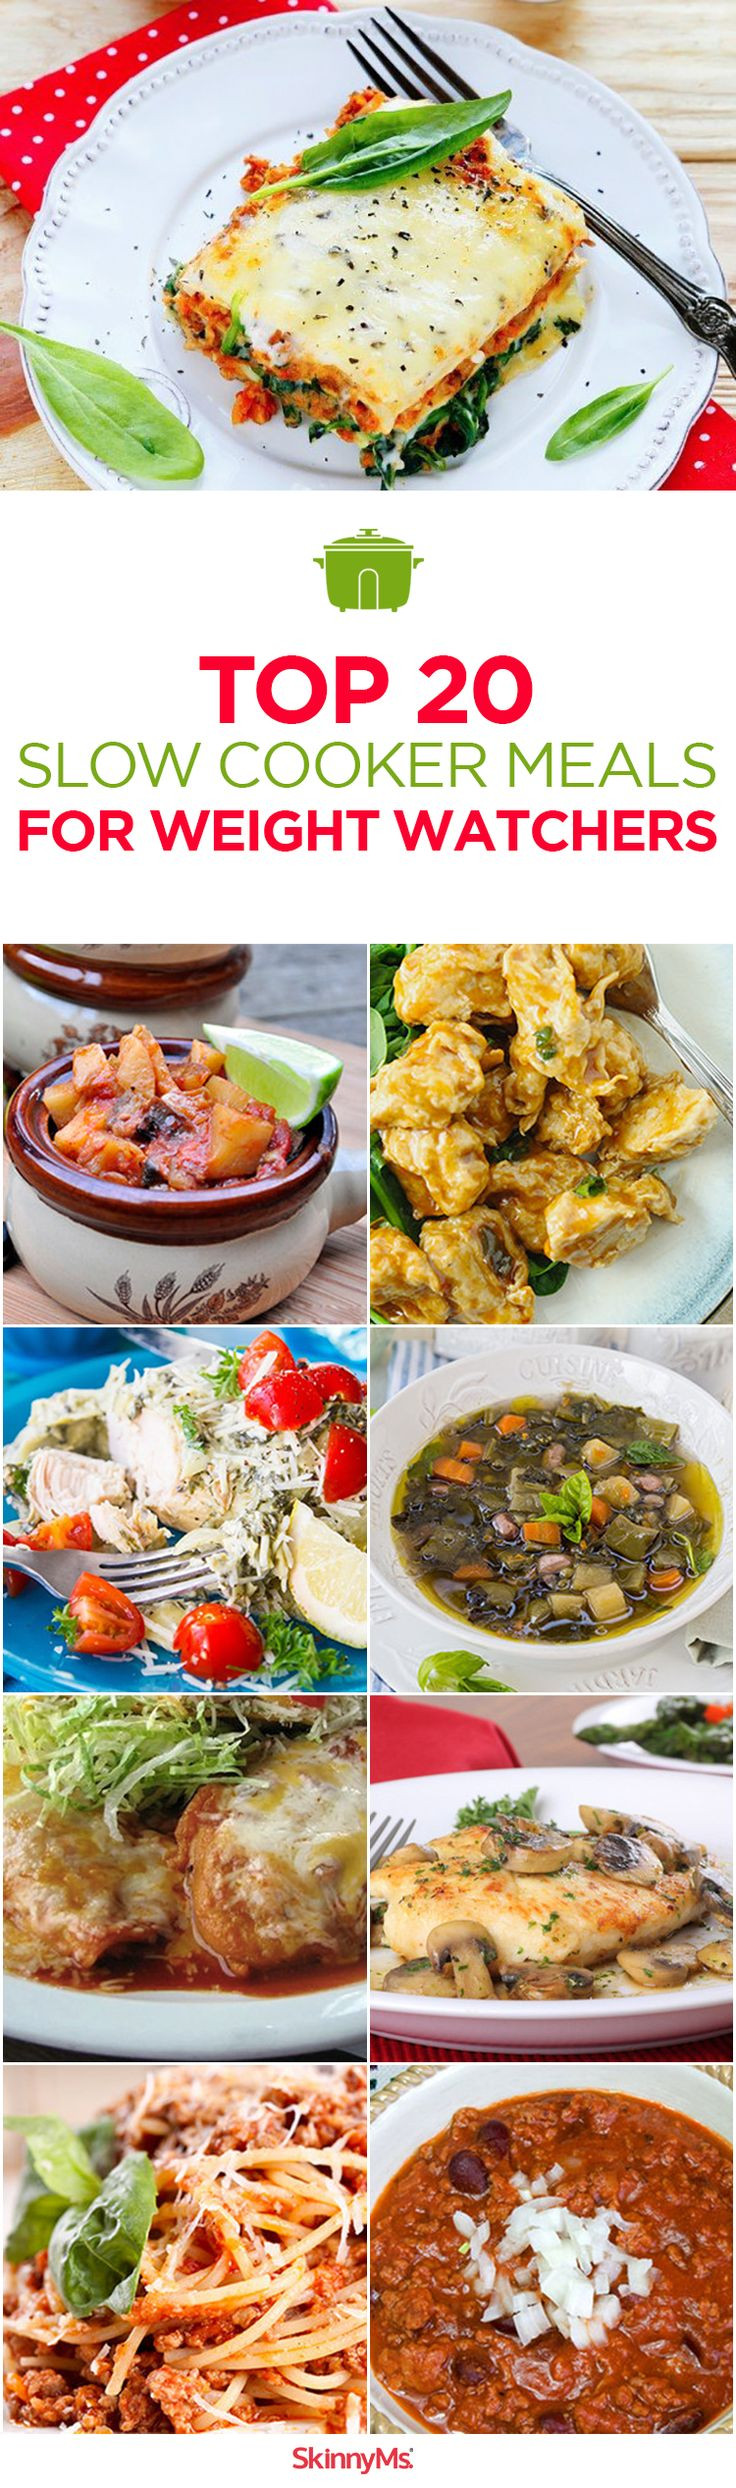 Slow Cooker Recipes For Weight Loss  Top 20 Slow Cooker Meals for Weight Watchers